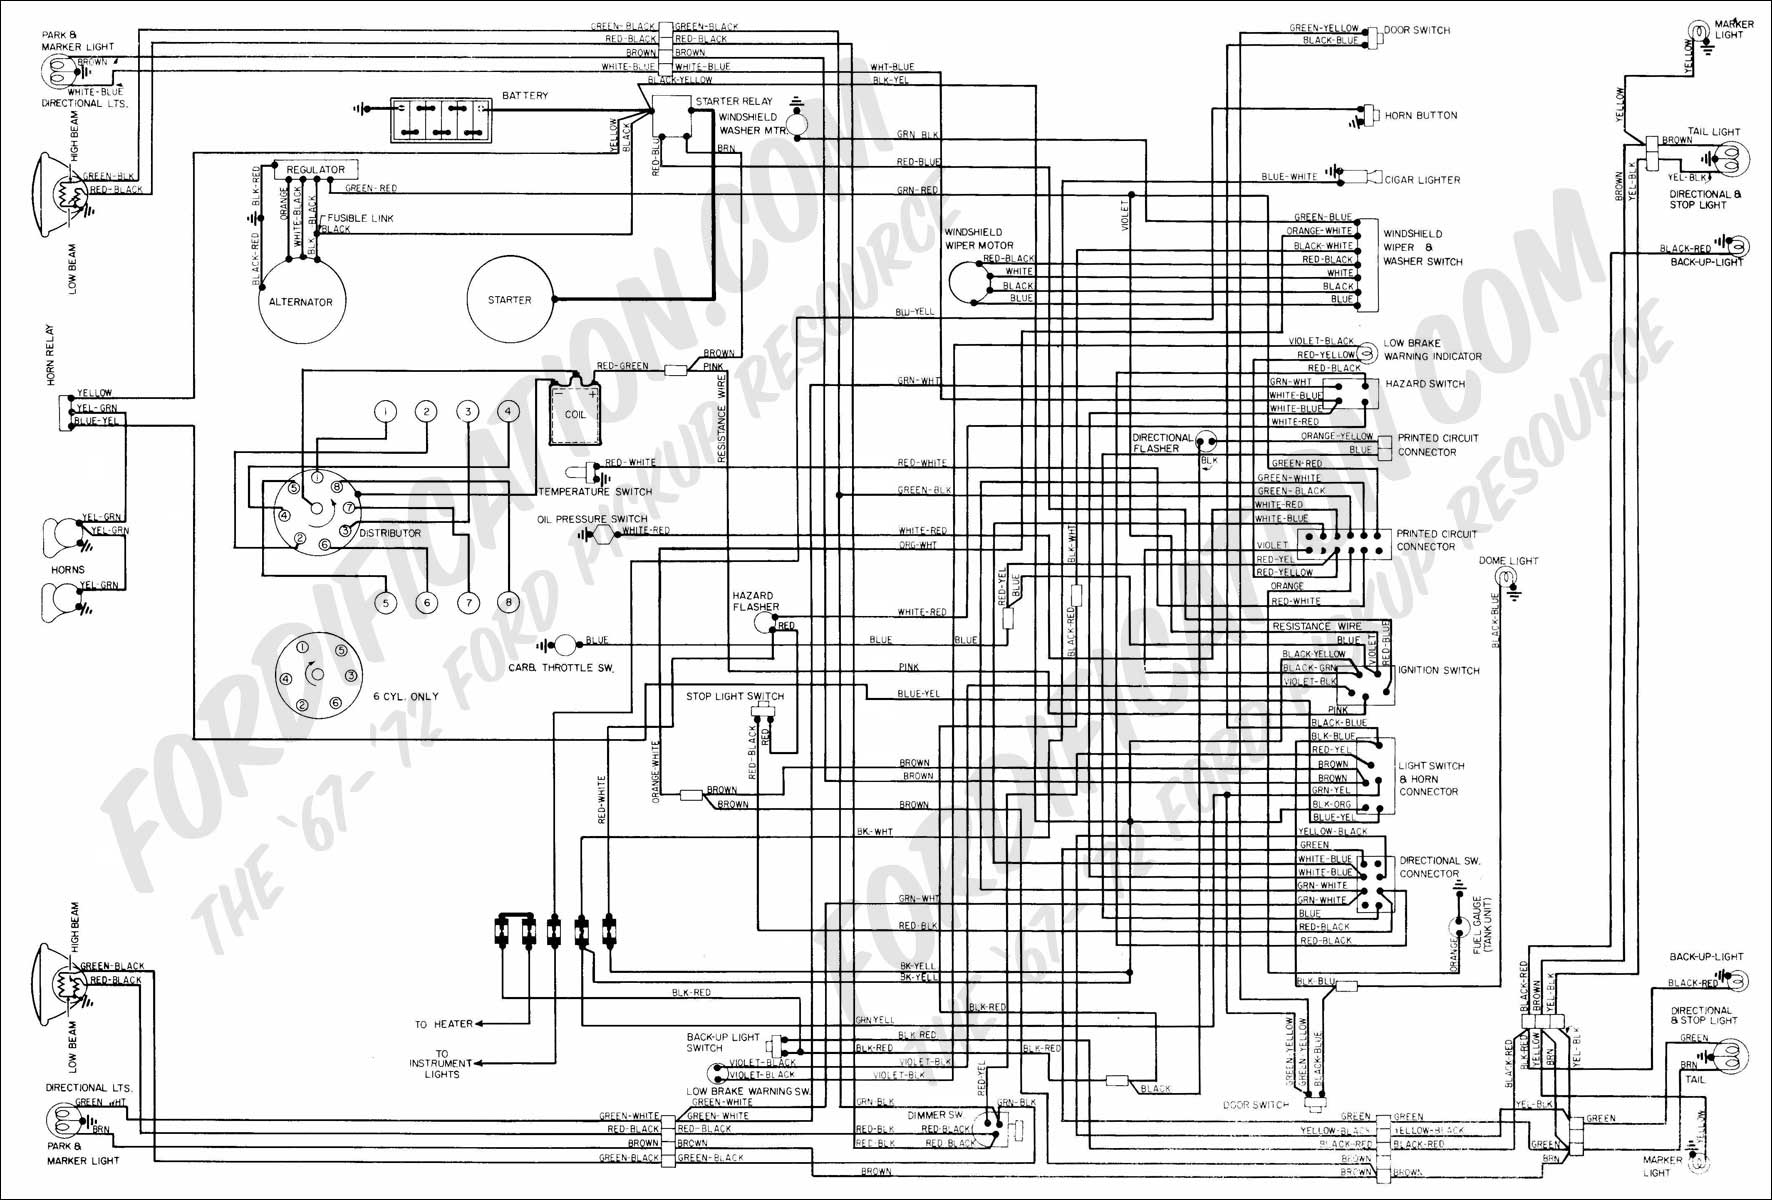 Wiring Diagram Quick on 1995 Ford F 150 Radio Wiring Diagram